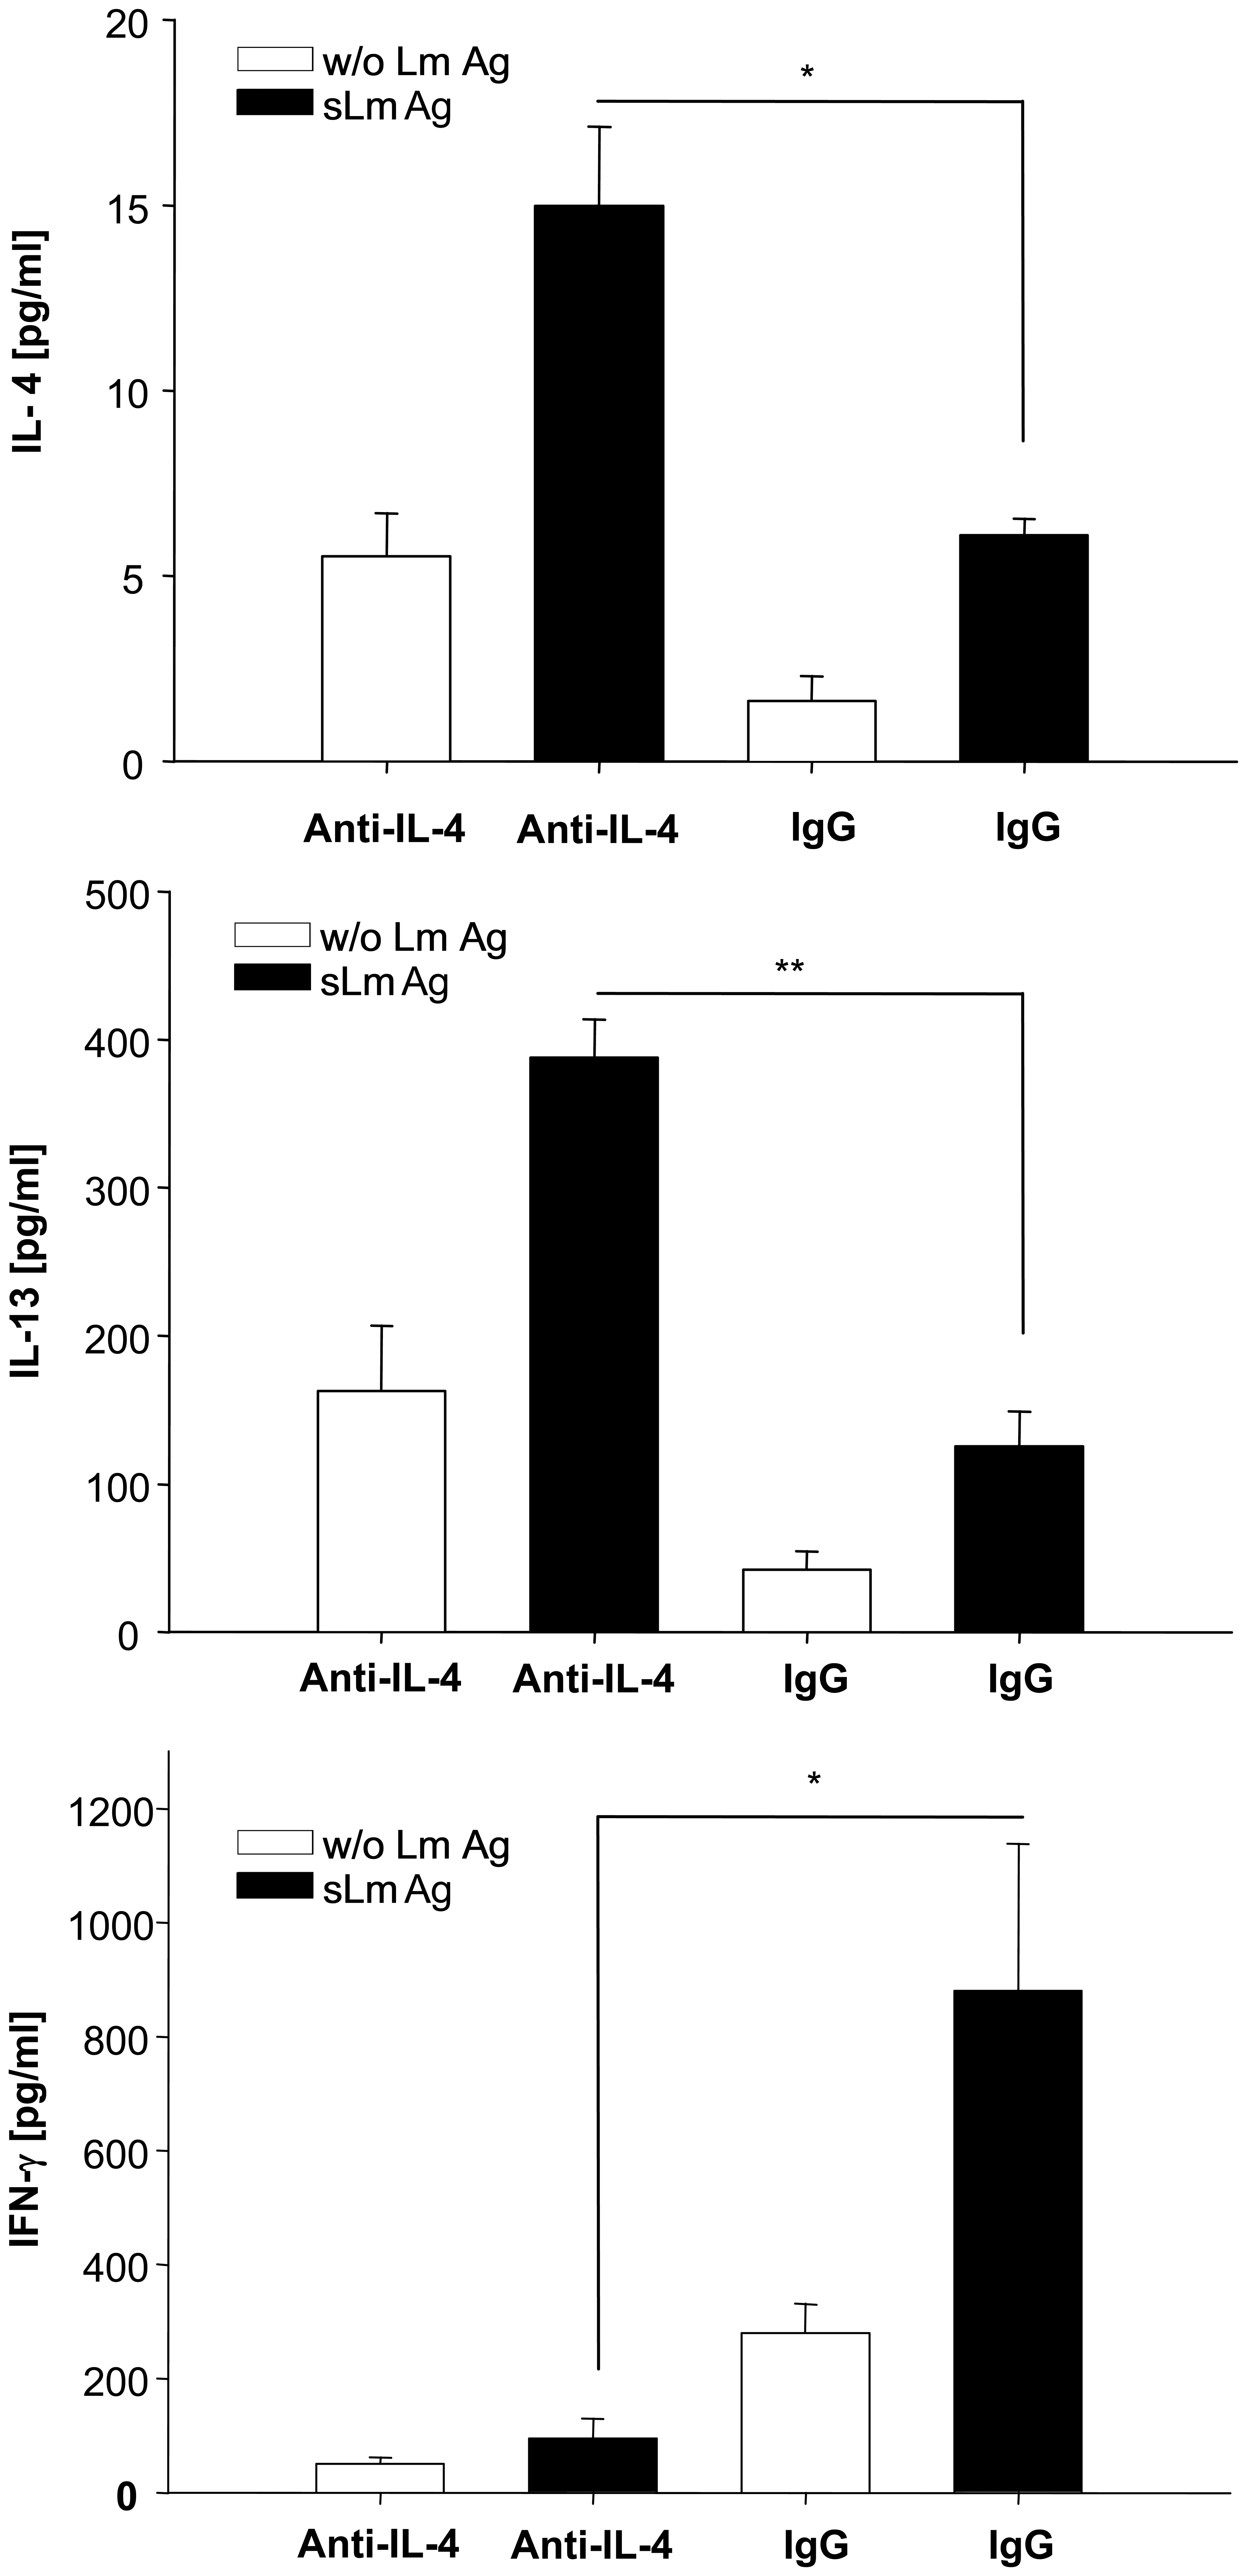 Early anti-IL-4 treatment induces a Th2 switch.